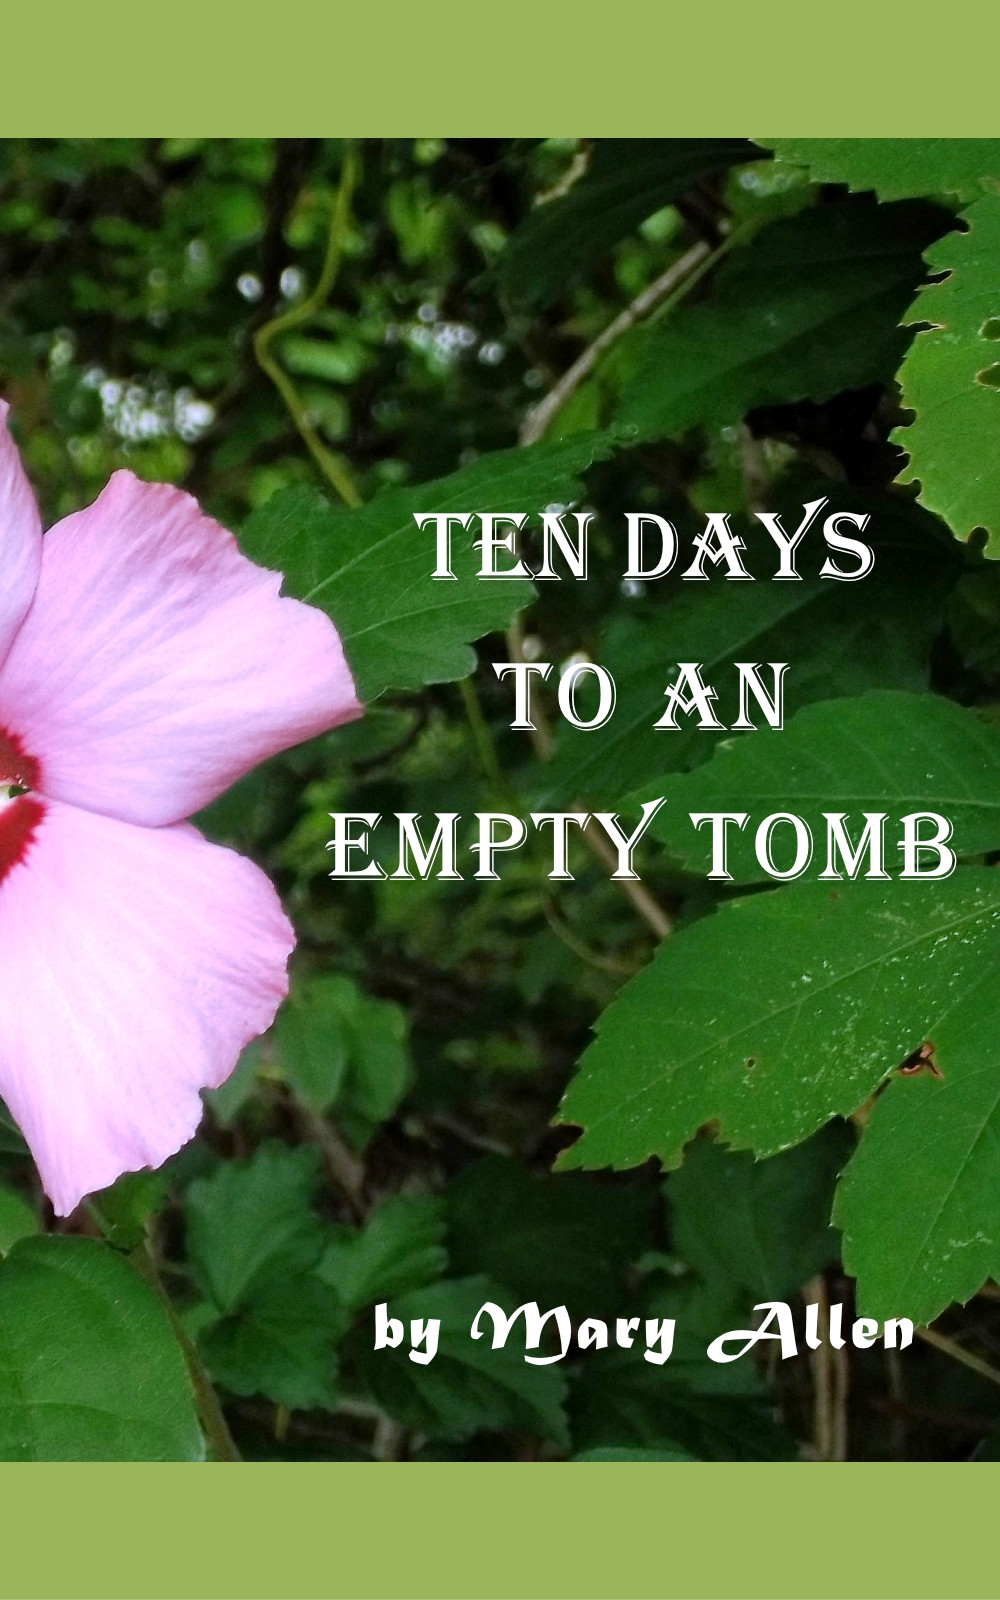 Poems found in Ten Days to an Empty Tomb